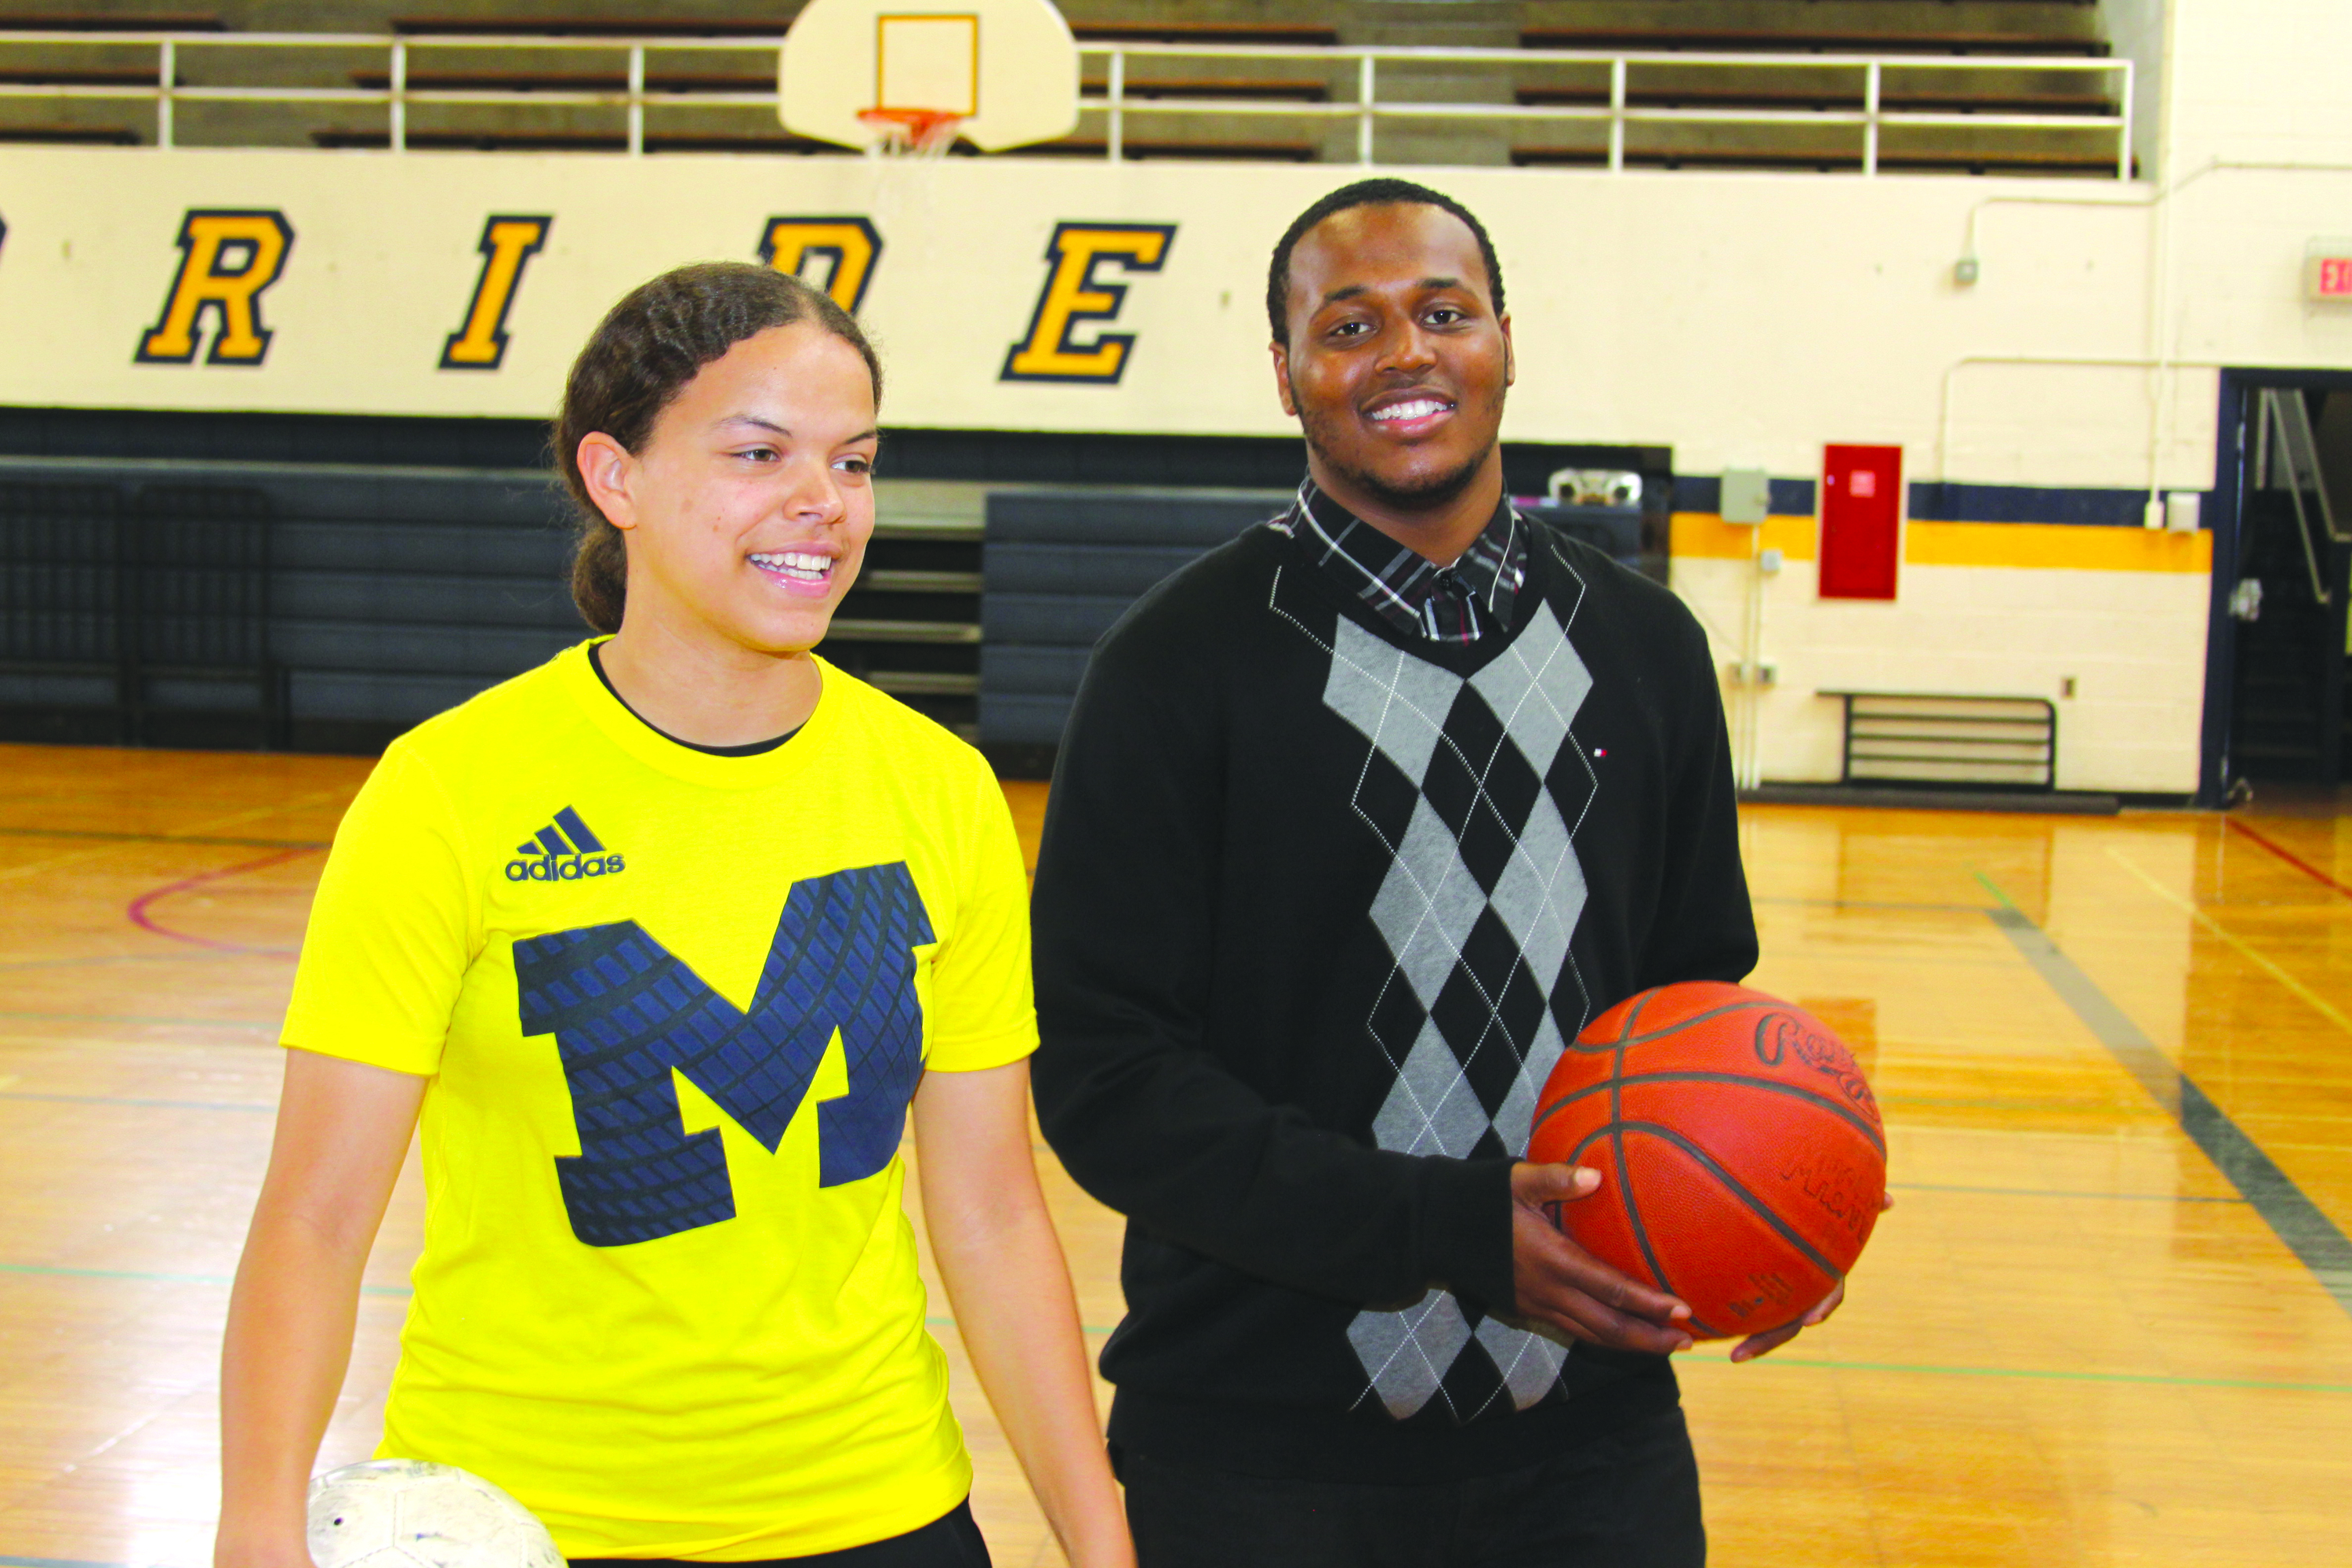 gates millenium scholarship essay questions the wayne dispatch  the wayne dispatch chance of a lifetime wayne memorial high school has two students who won gates millennium scholarship essays writing